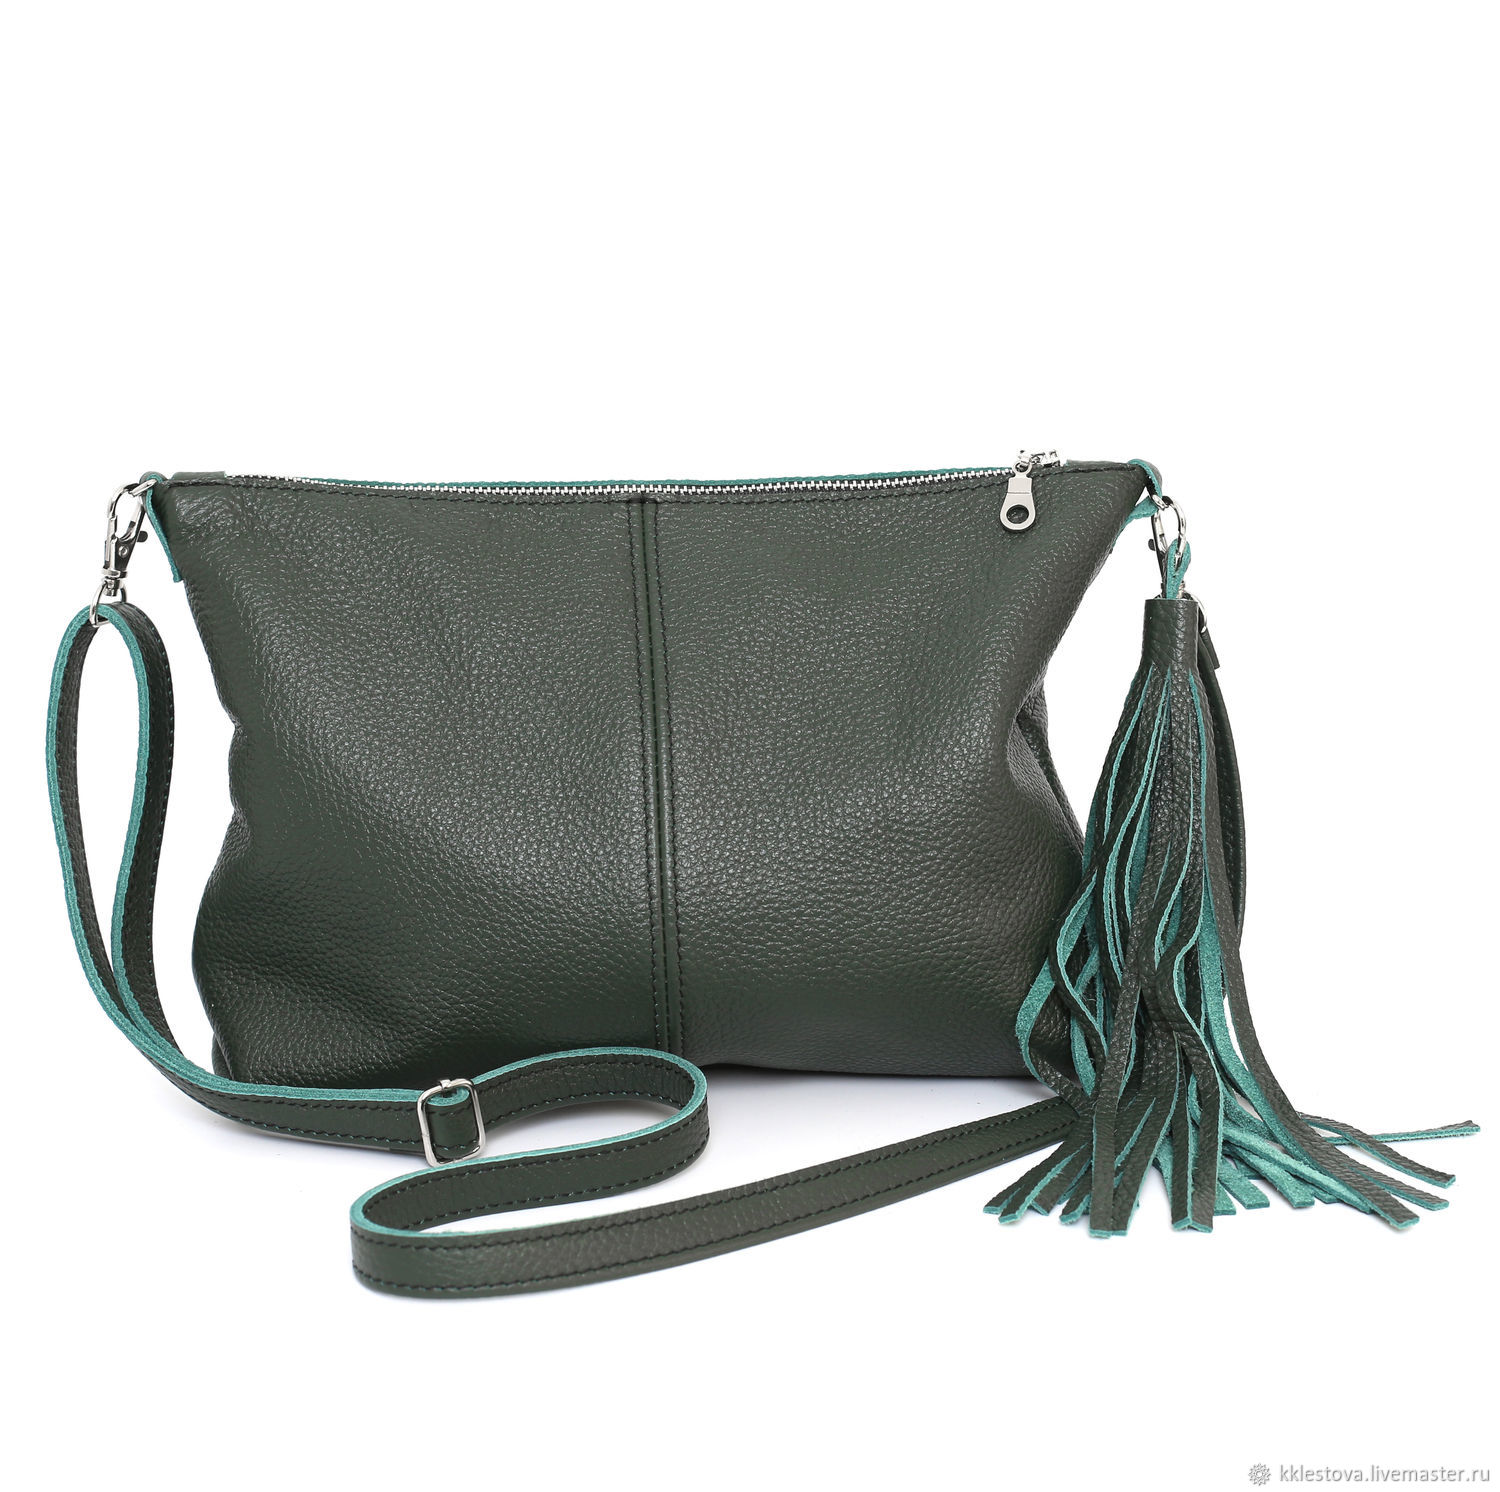 Clutch shoulder Bag with strap and pocket Crossbody, Clutches, Moscow,  Фото №1